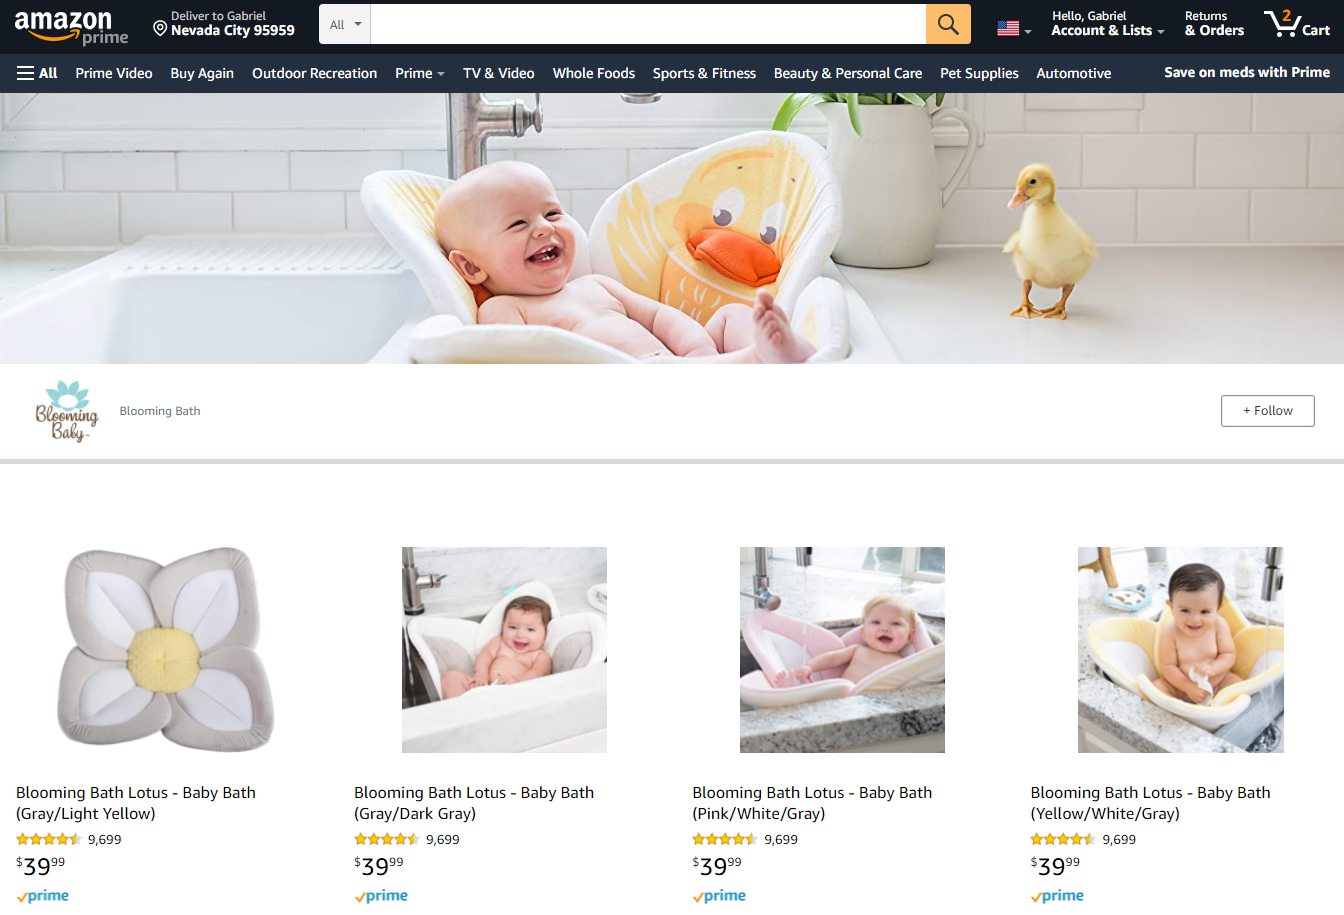 Blooming Bath's Amazon page